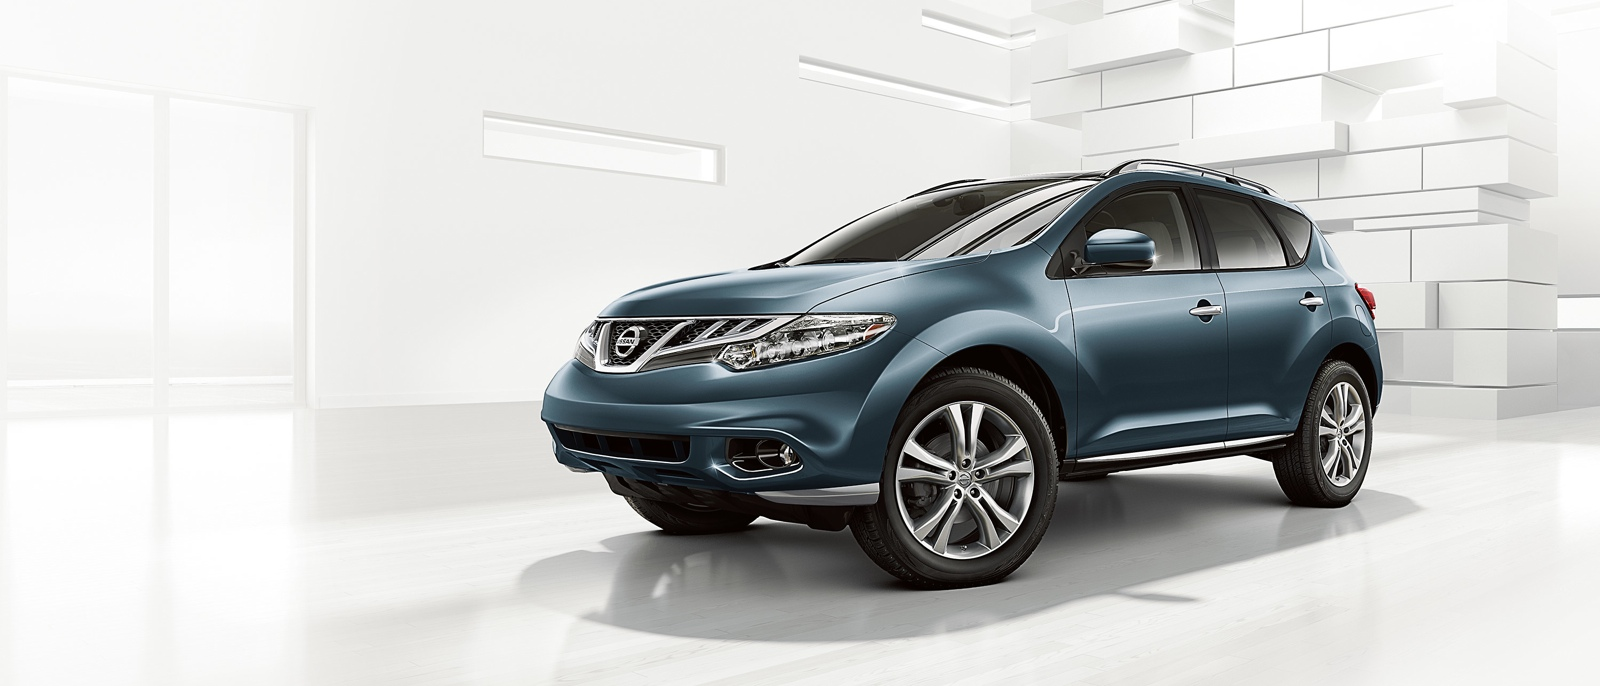 2014 nissan murano indianapolis plainfield andy mohr. Black Bedroom Furniture Sets. Home Design Ideas